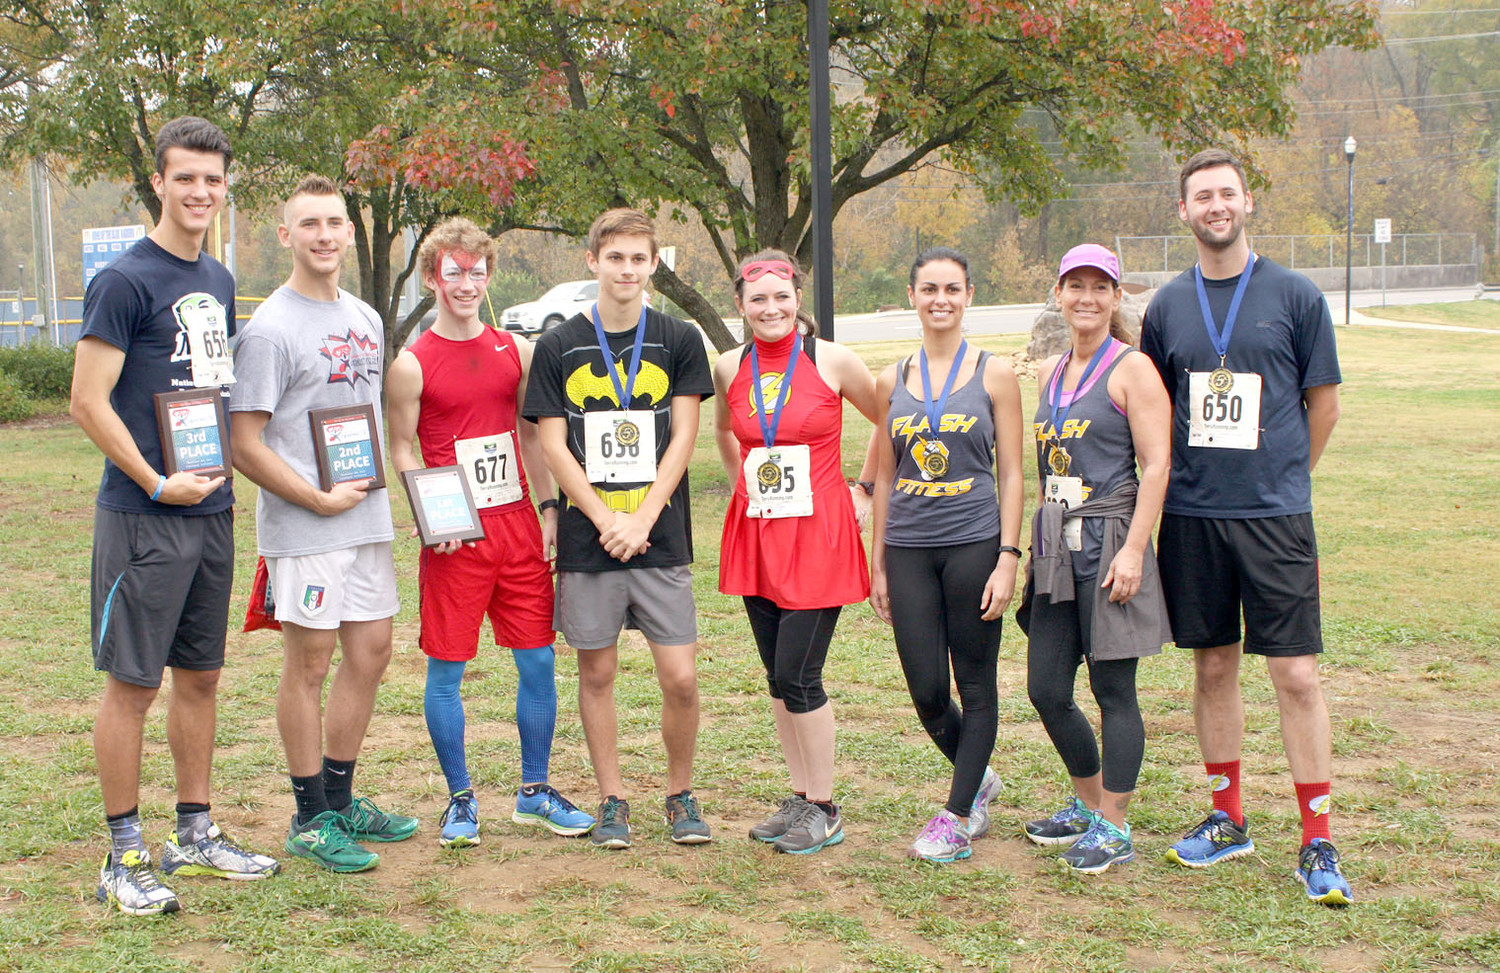 VARIOUS PARTICIPANTS were involved in the recent CASA Superhero run/